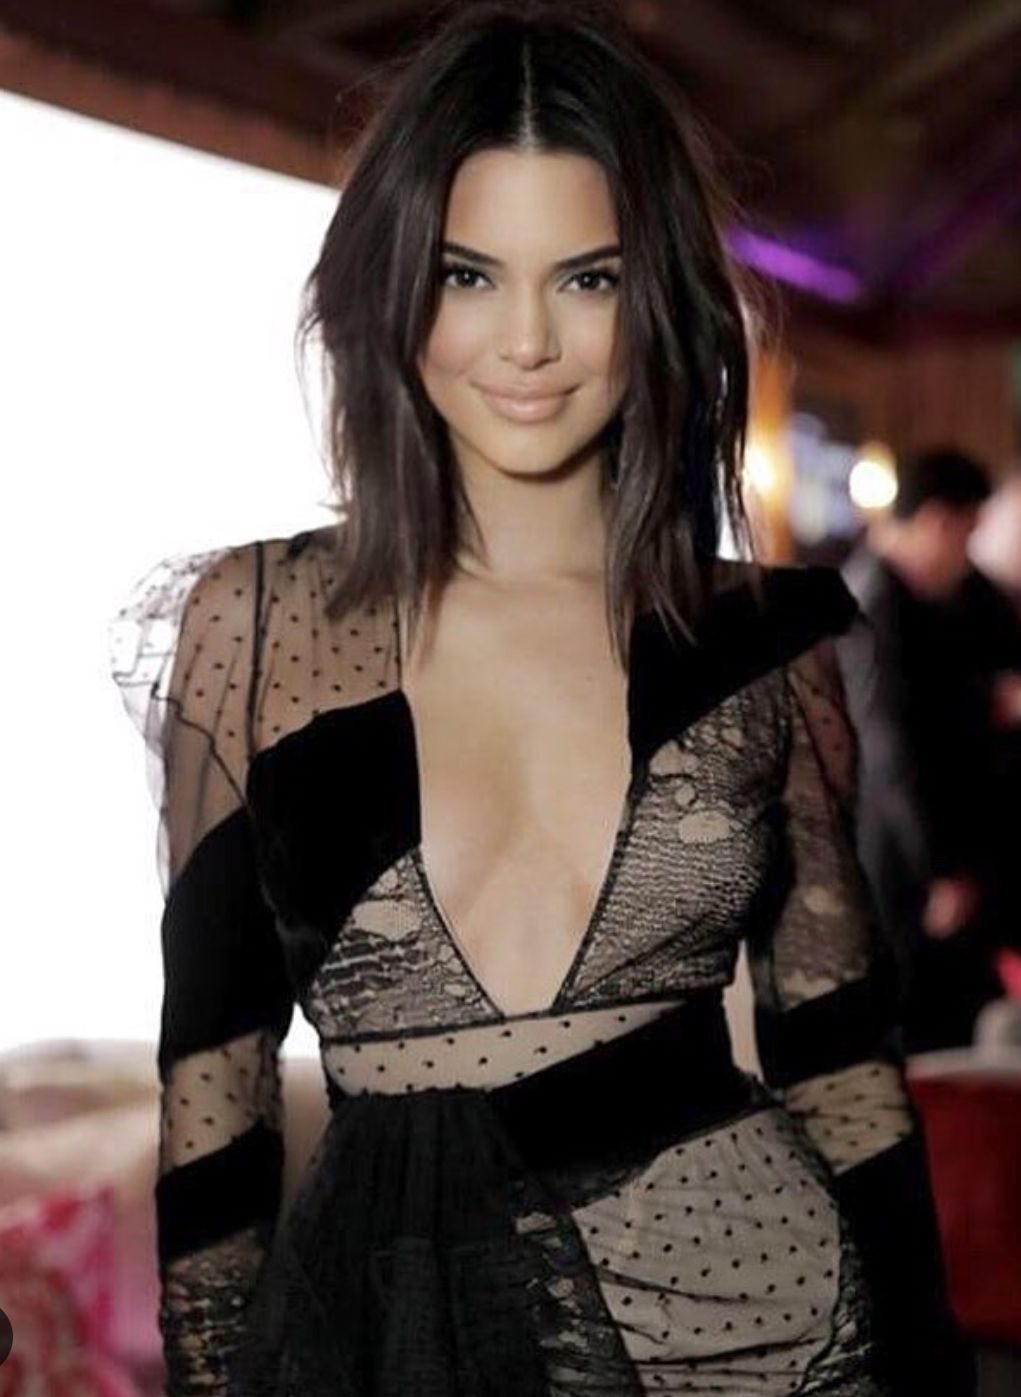 picture Kendall Jenner tits. 2018-2019 celebrityes photos leaks!